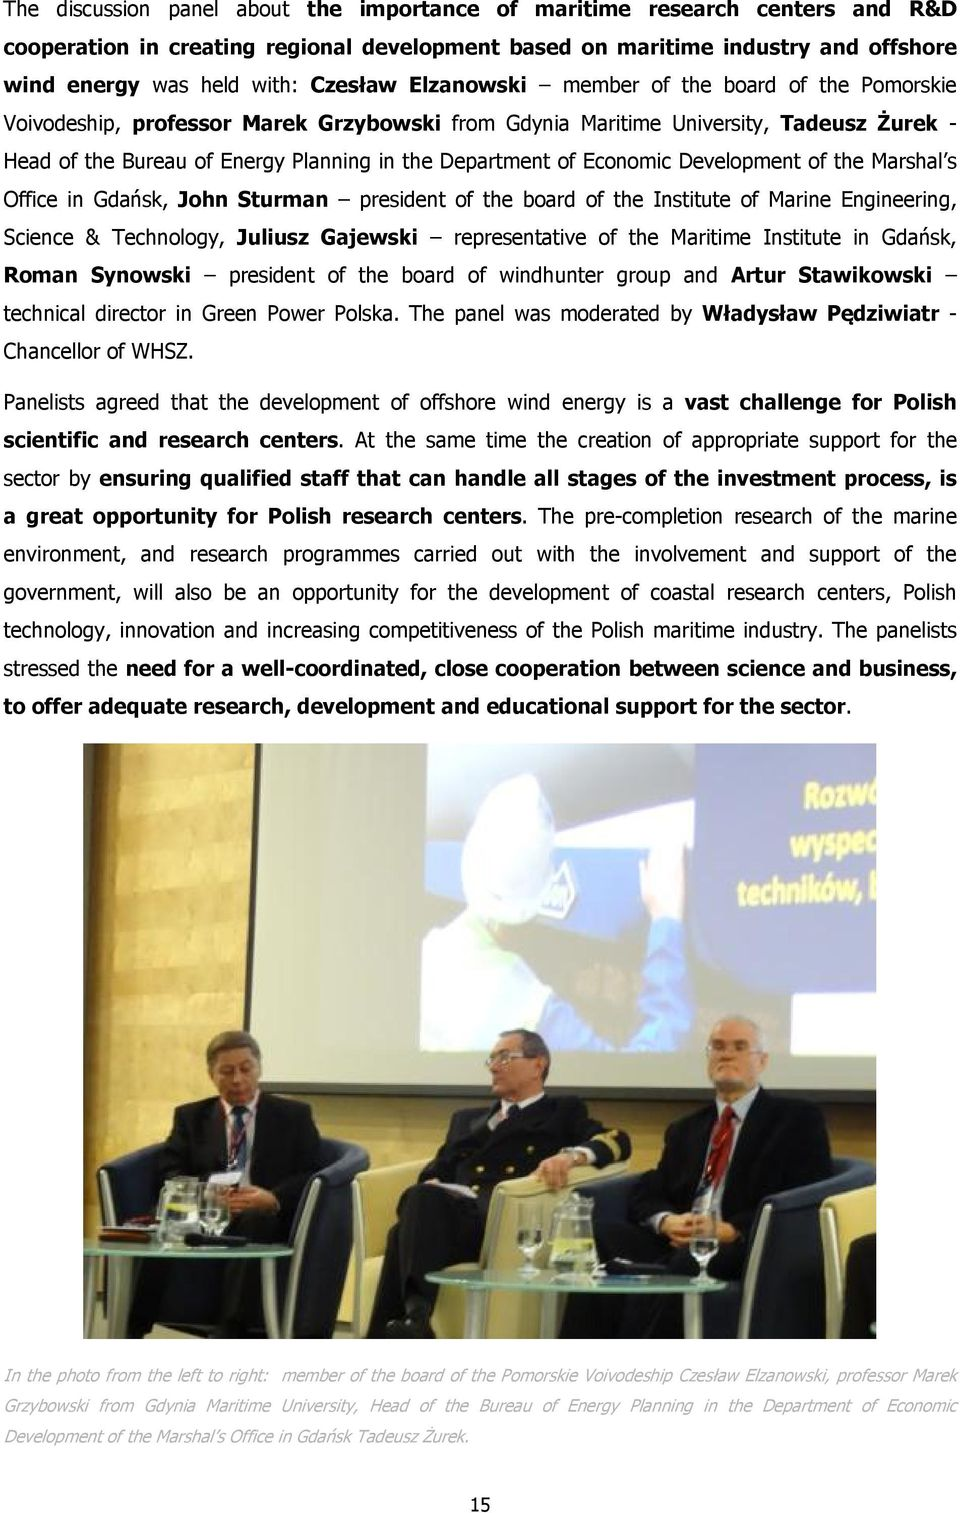 Economic Development of the Marshal s Office in Gdańsk, John Sturman president of the board of the Institute of Marine Engineering, Science & Technology, Juliusz Gajewski representative of the